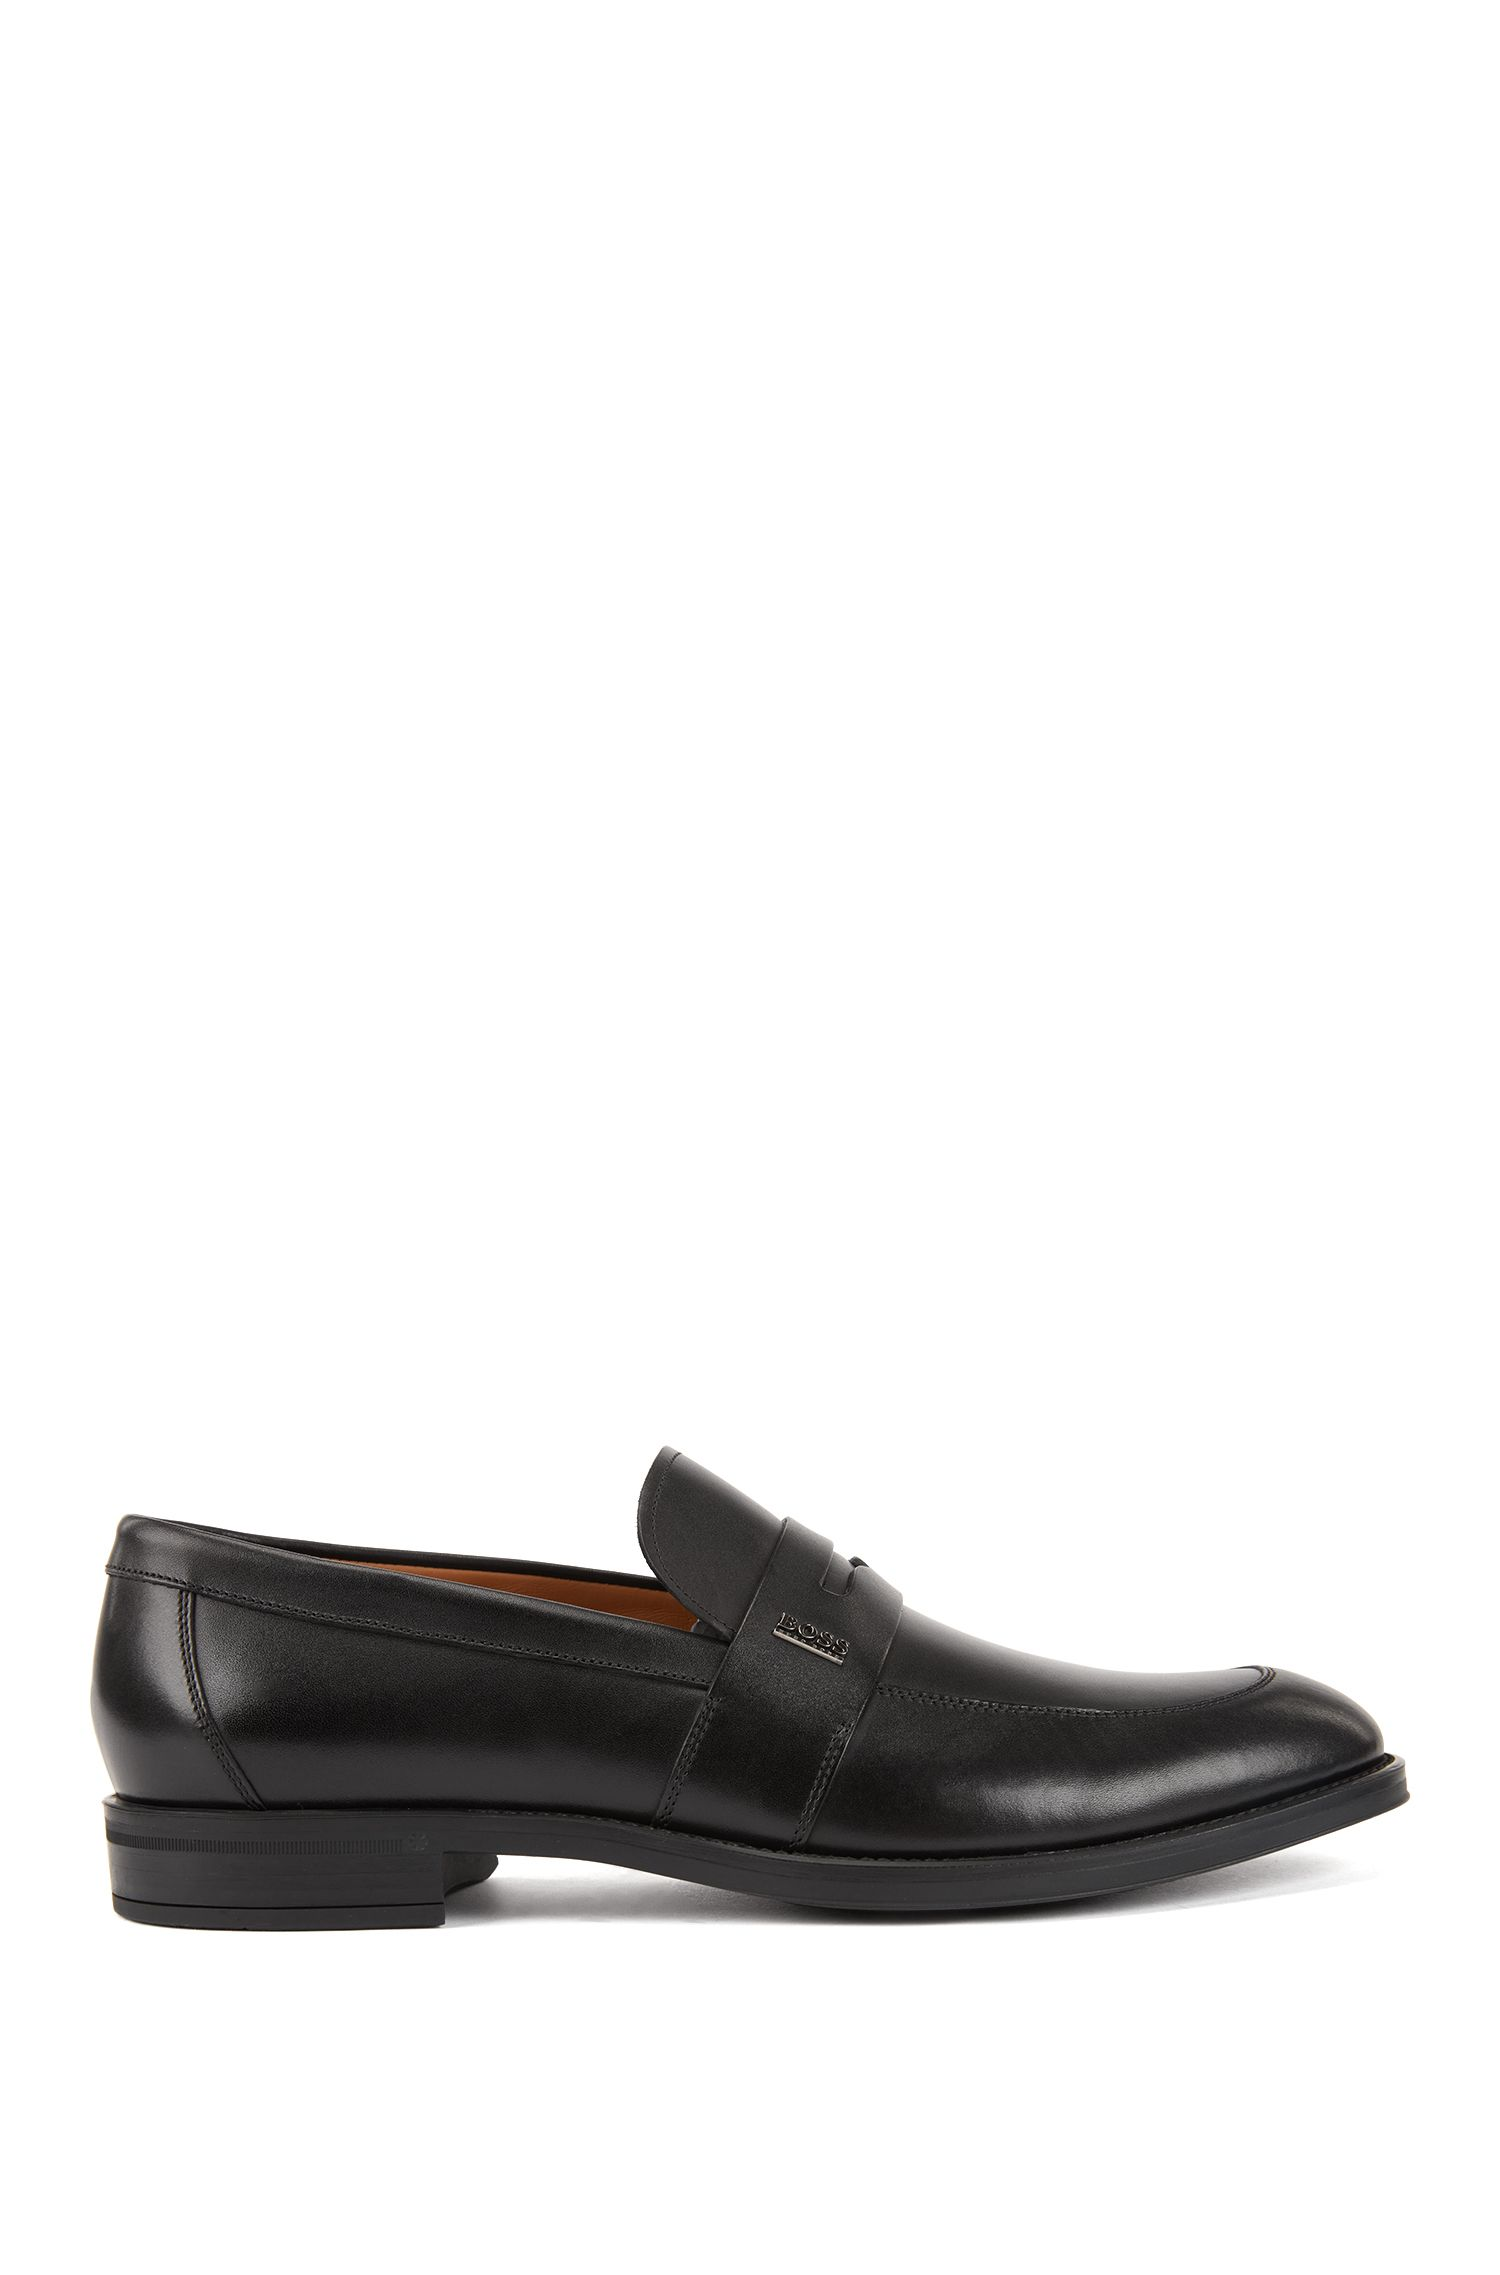 Business loafers in burnished calf leather, Black